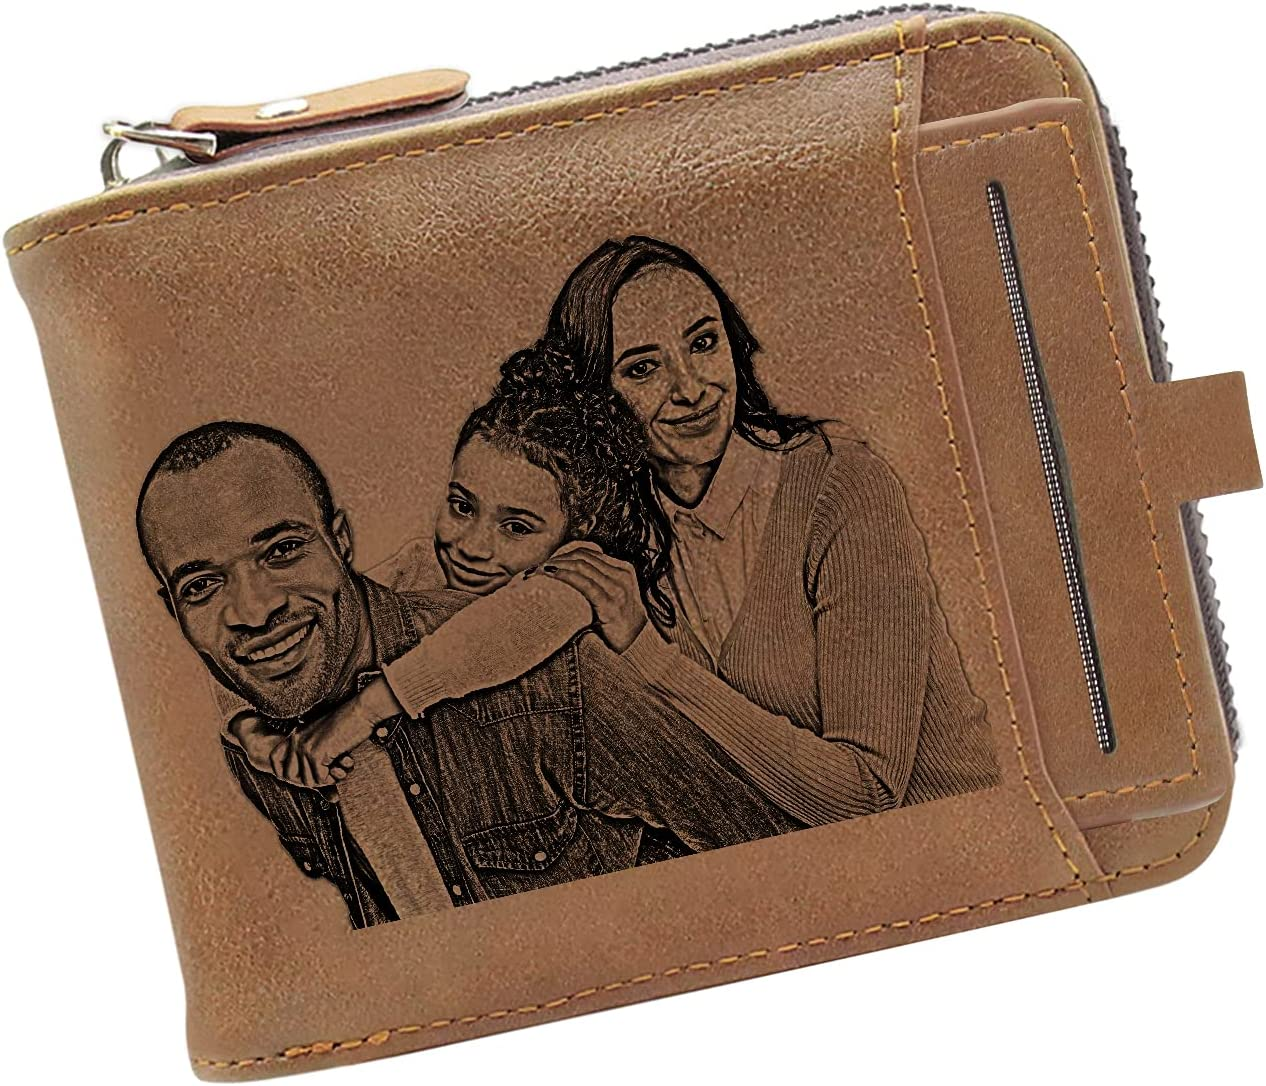 Personalized Engraved Wallet, Custom Leather Photo Wallet Customized Zipper Wallet for Father's Day, Christmas Day Gift